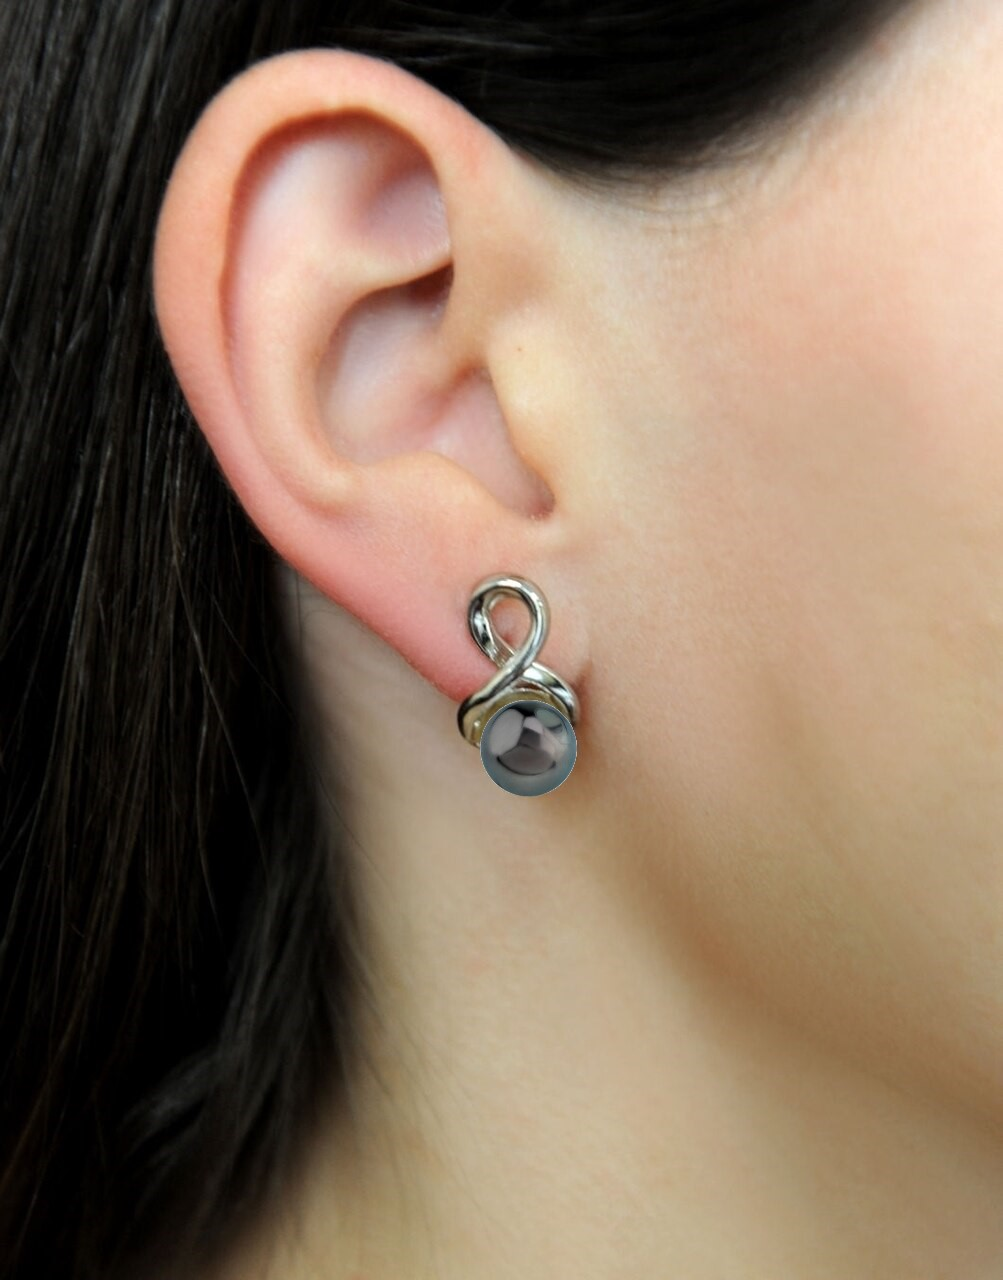 Exquisite earrings feature two 8.0-9.0mm  Tahitian South Sea pearls, selected for their luminous luster